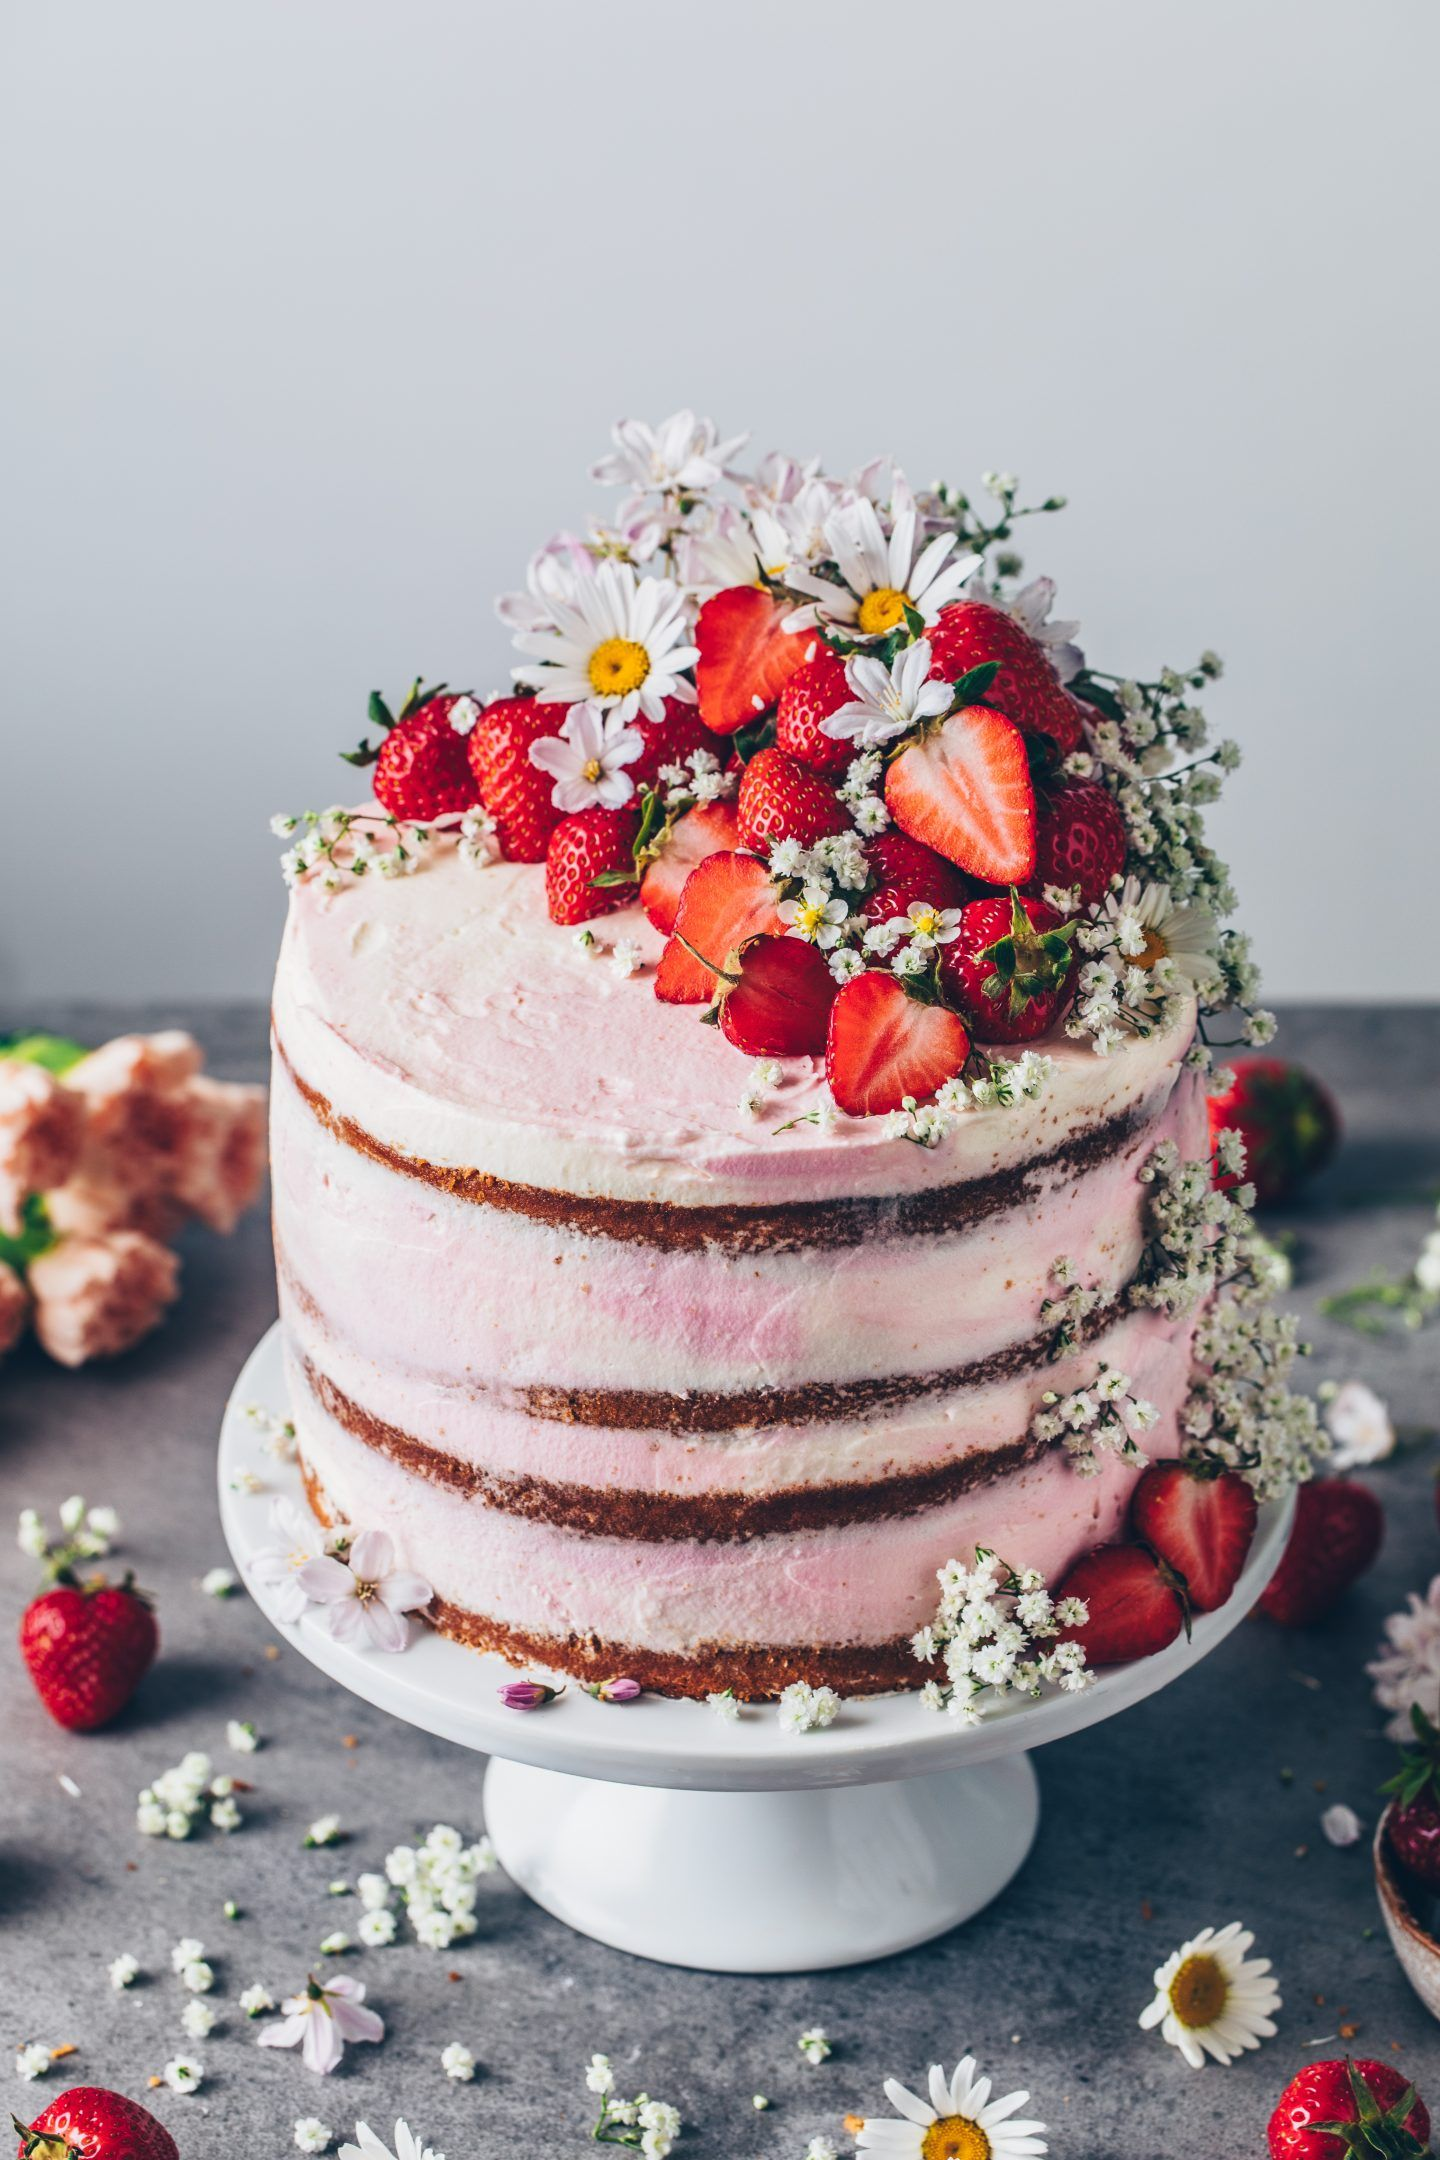 Strawberry Cream Naked Cake Recipe - Bianca Zapatka | Recipes